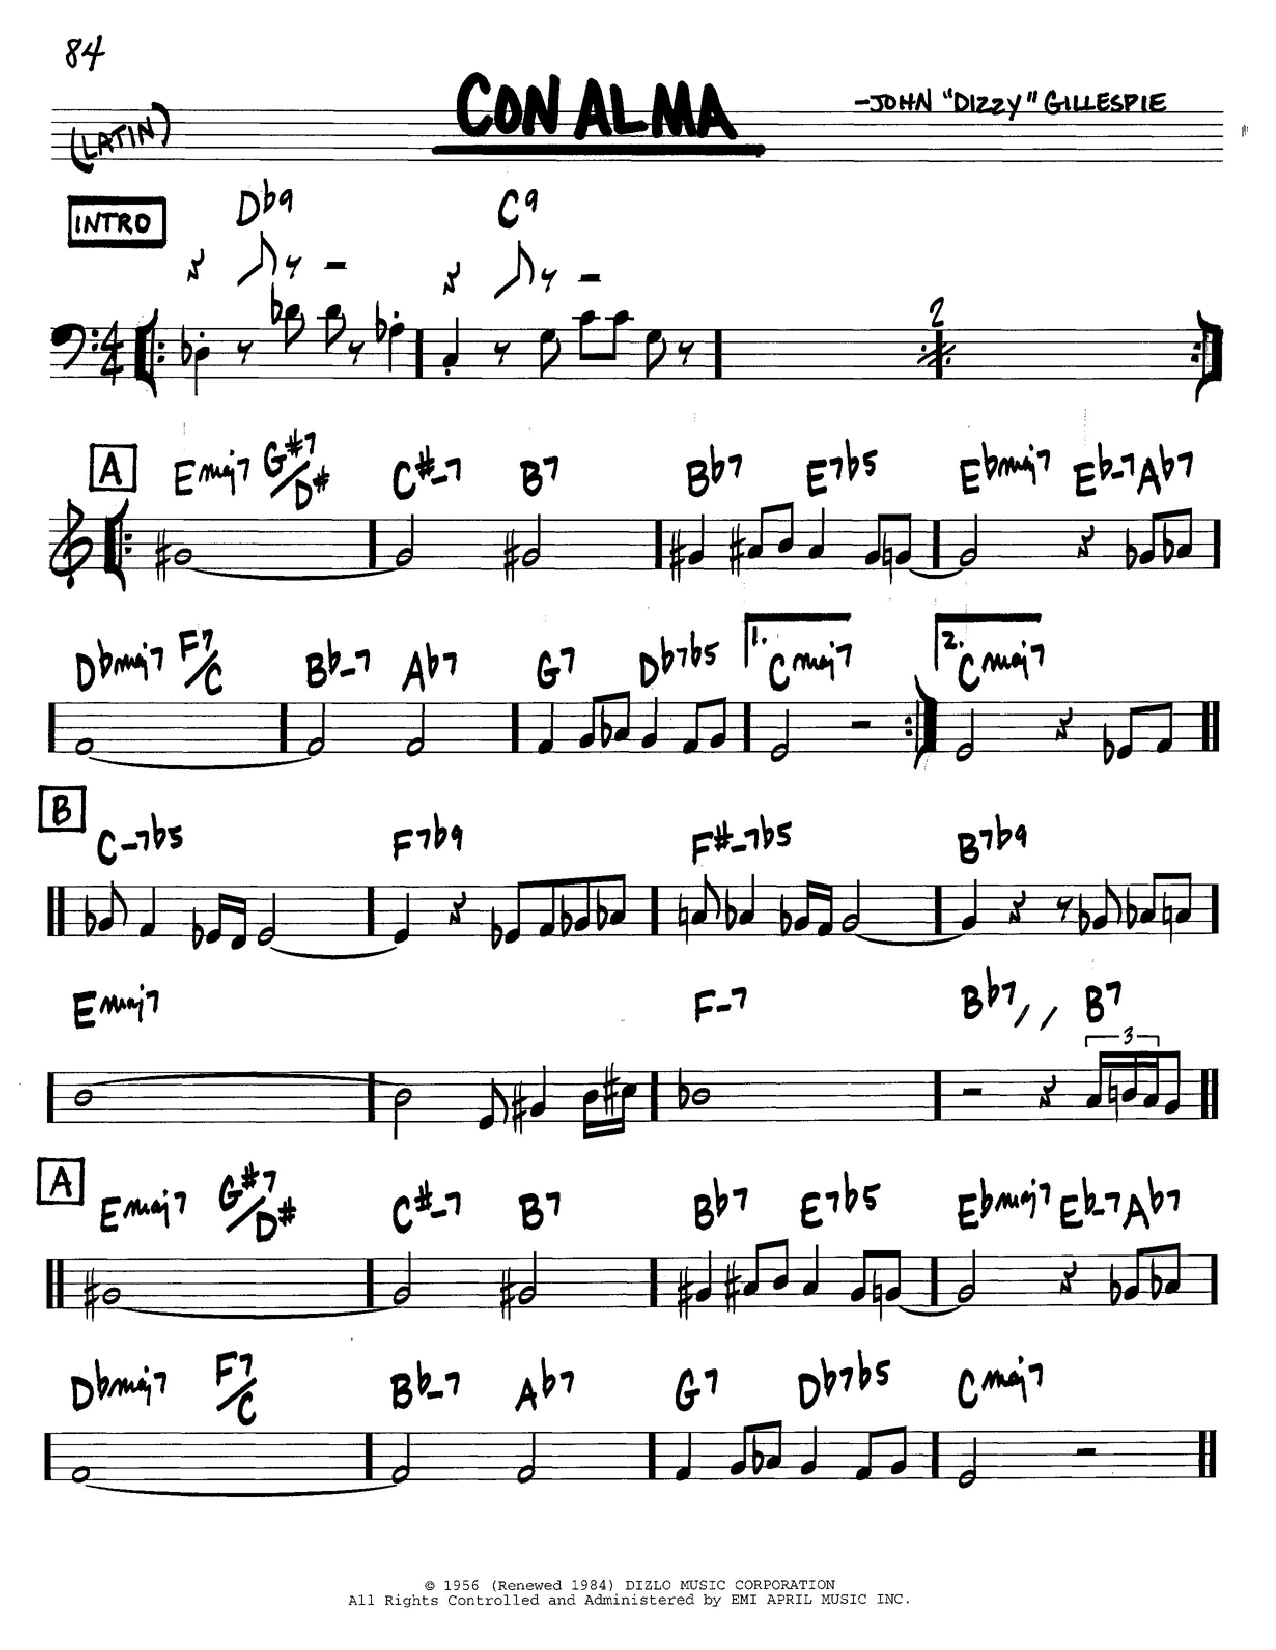 Dizzy Gillespie Con Alma sheet music notes and chords. Download Printable PDF.